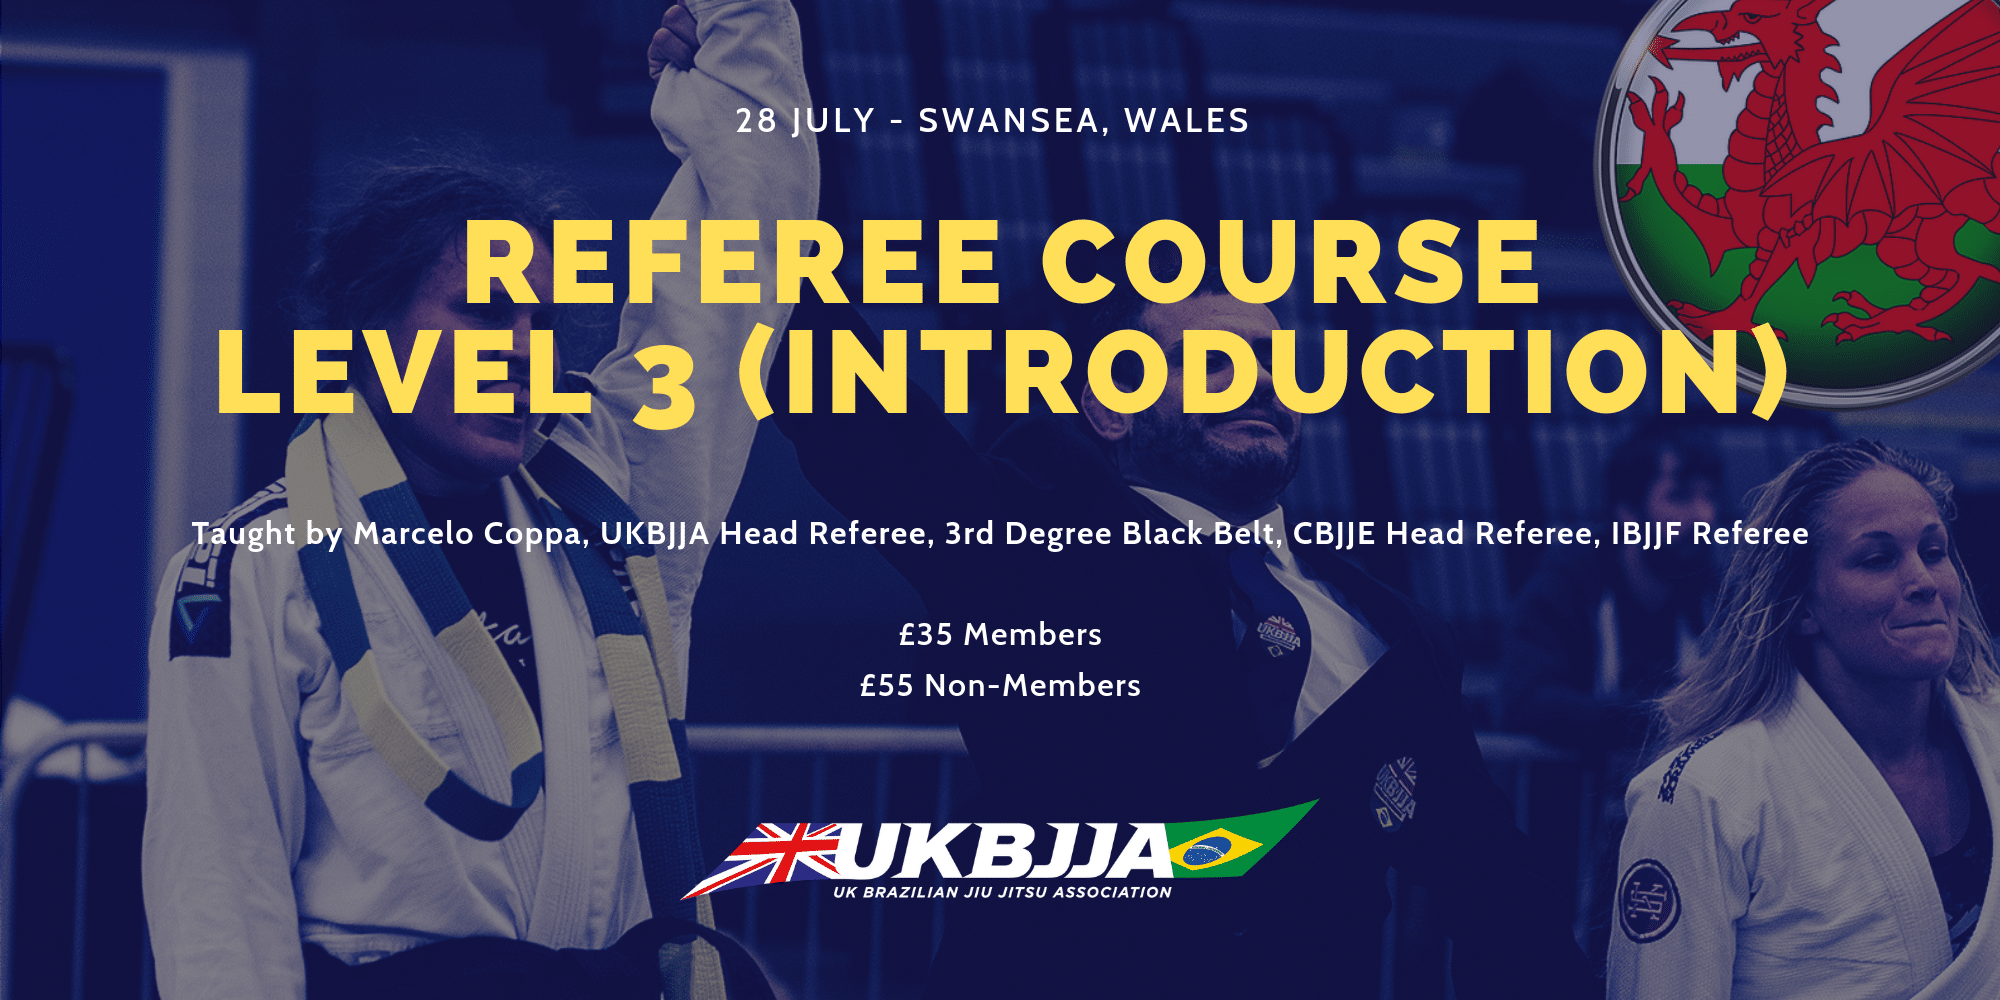 UKBJJA BJJ Referee Course Swansea Wales 28 July 2019